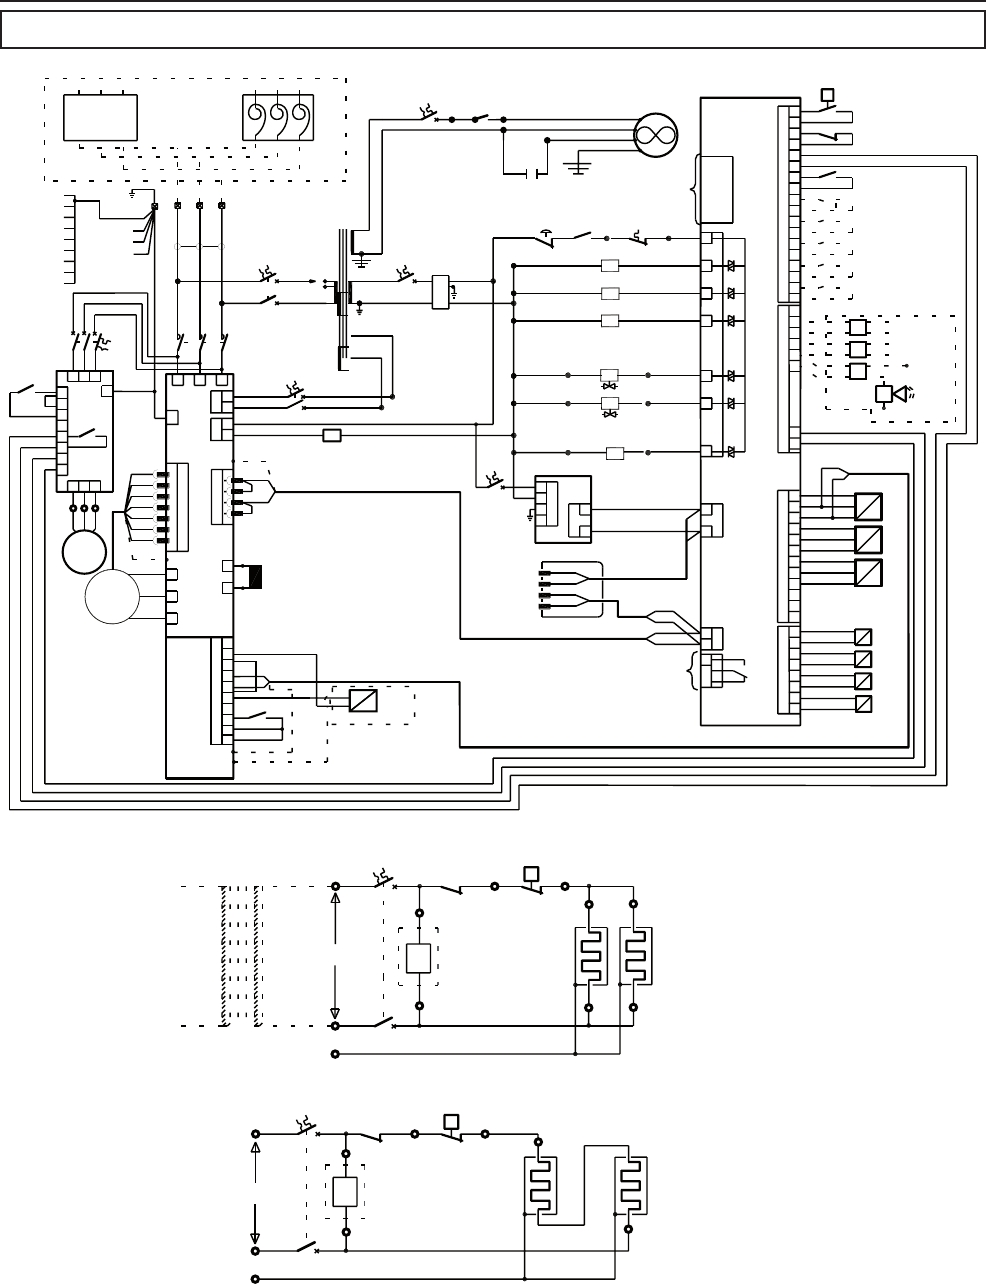 ingersoll rand t30 wiring diagram Collection-Ingersoll Rand T30 Wiring Diagram Ingersoll Rand Air Pressor Wiring Diagram Elegant Beautiful Pressor Wiring 10-a